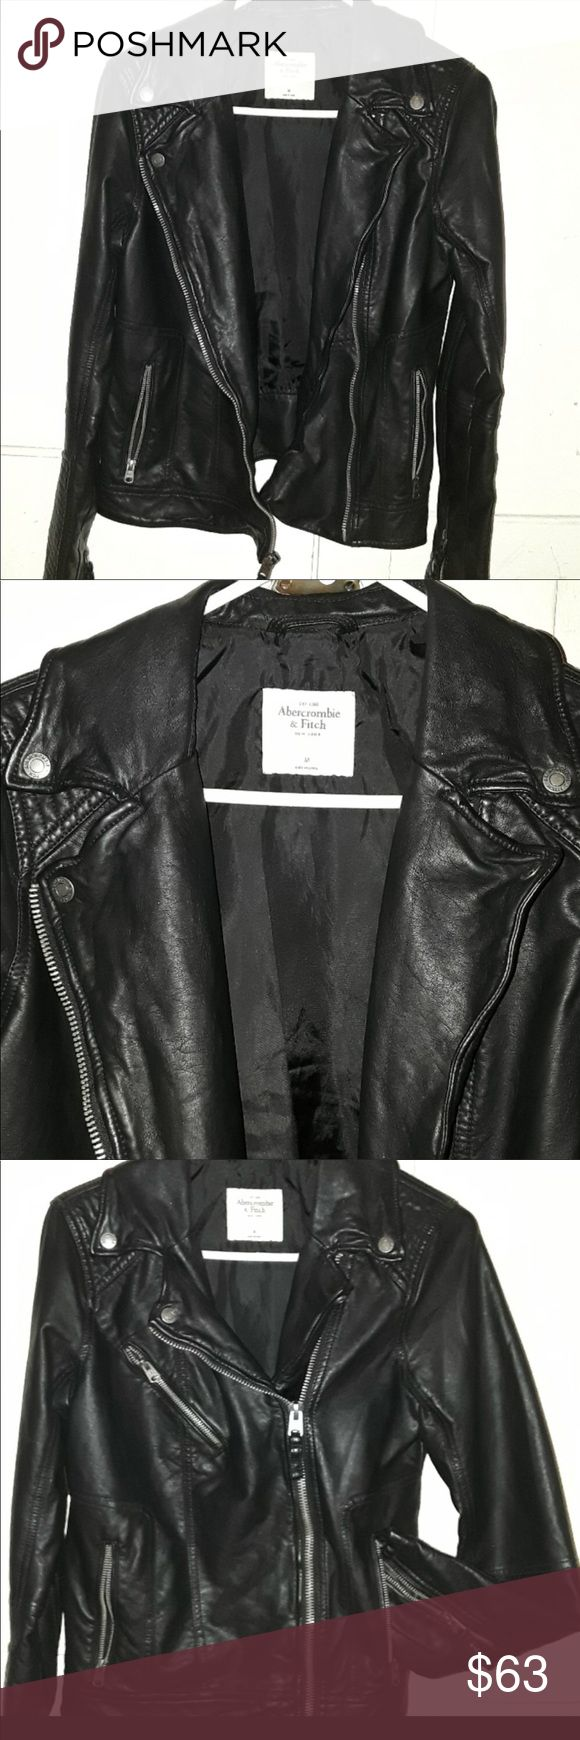 ABERCROMBIE AND FITCH BLACK LEATHER JACKET Black vegan leather. Perfect condition. All zippers work. Size small! You can dress down or up with anything! Abercrombie & Fitch Jackets & Coats Jean Jackets